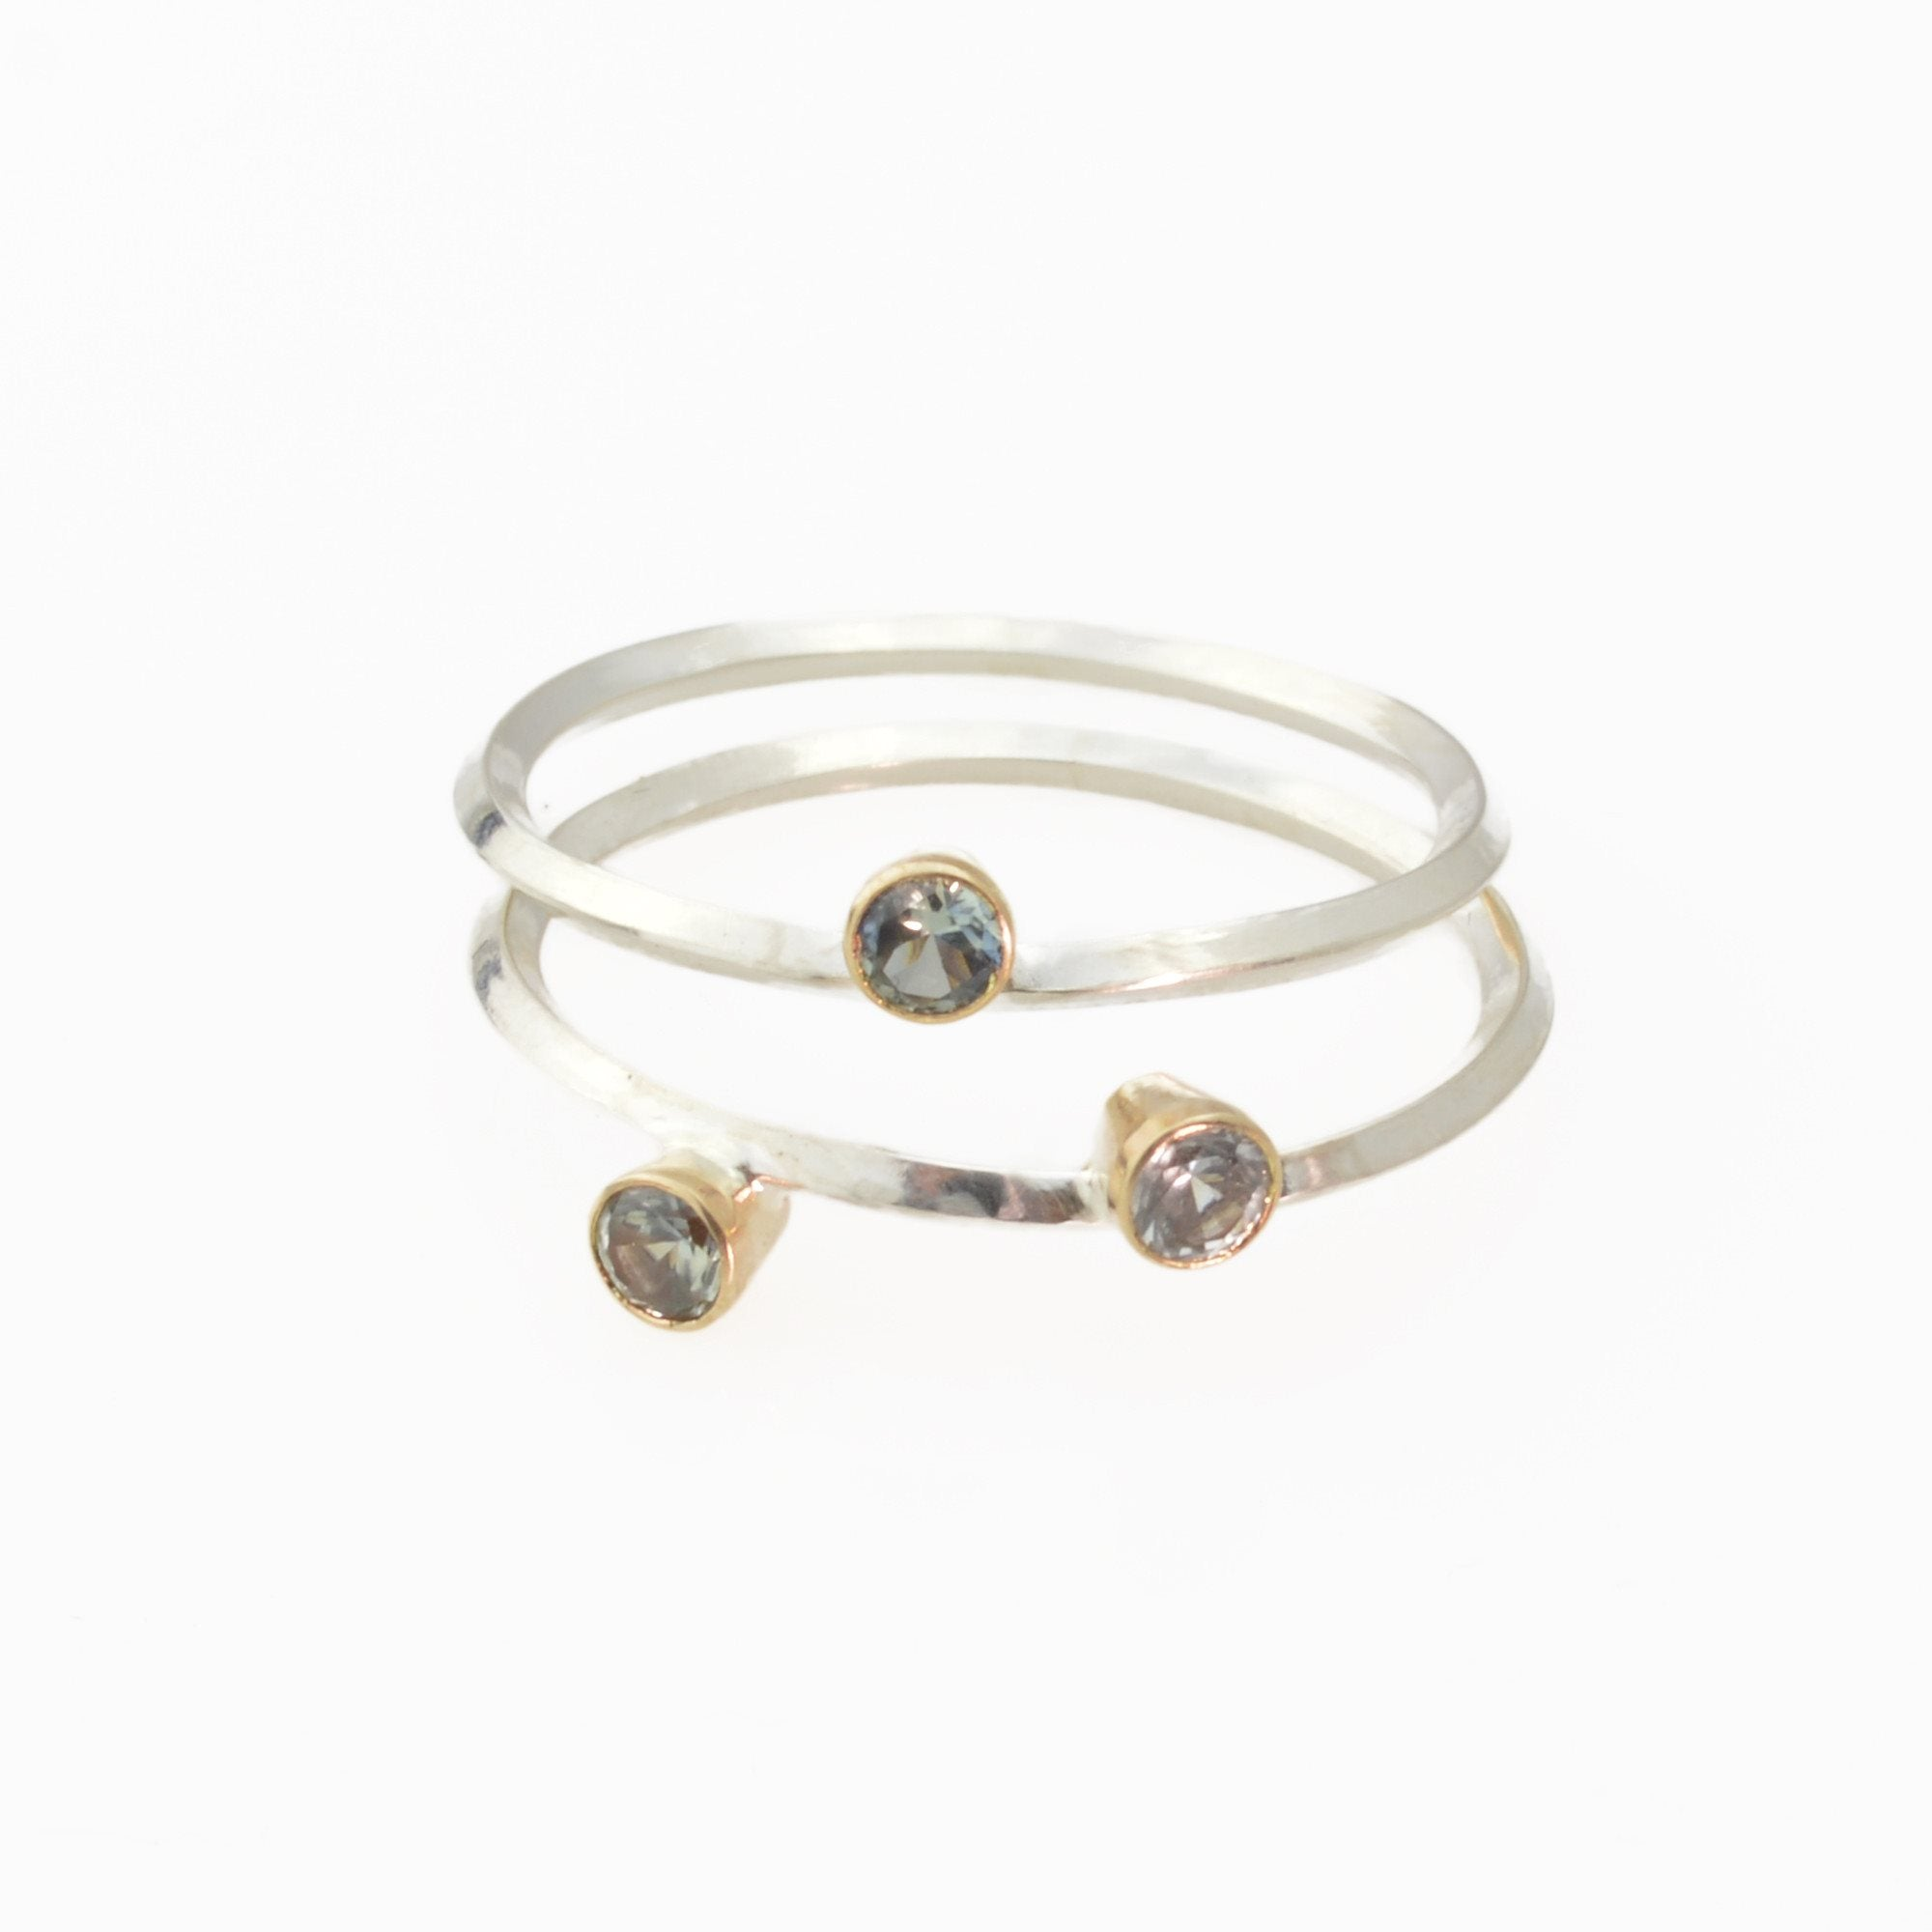 Metropolis One Montana Sapphire Stacking Ring in 14k Gold and Sterling Silver